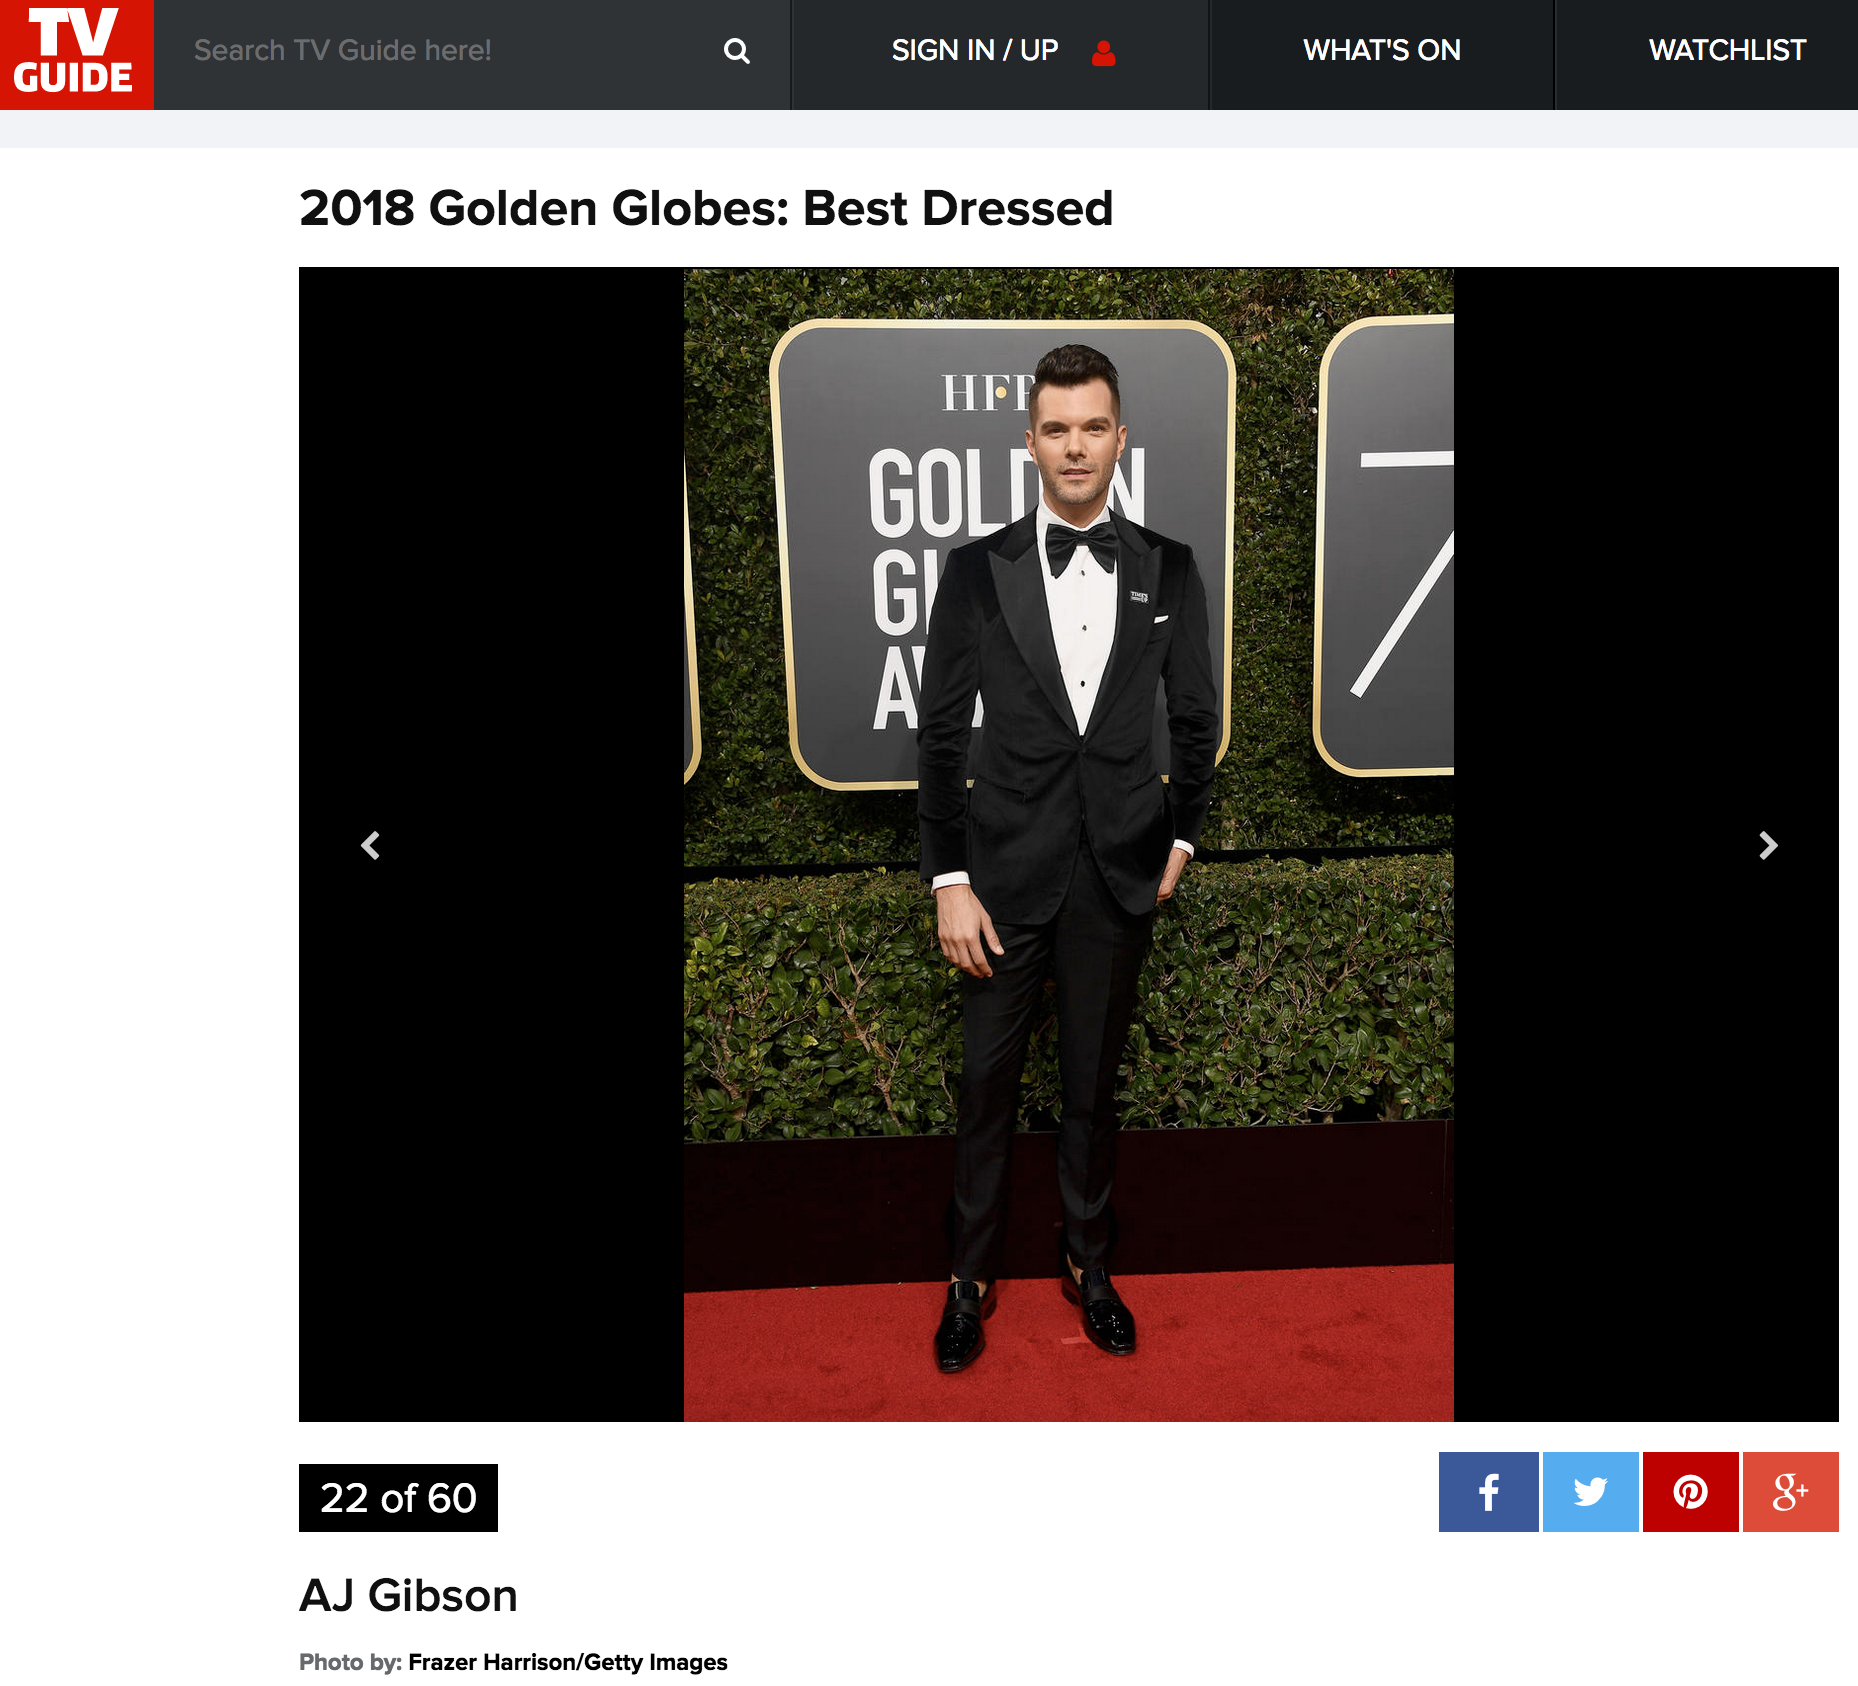 2018 Golden Globes: Best Dressed